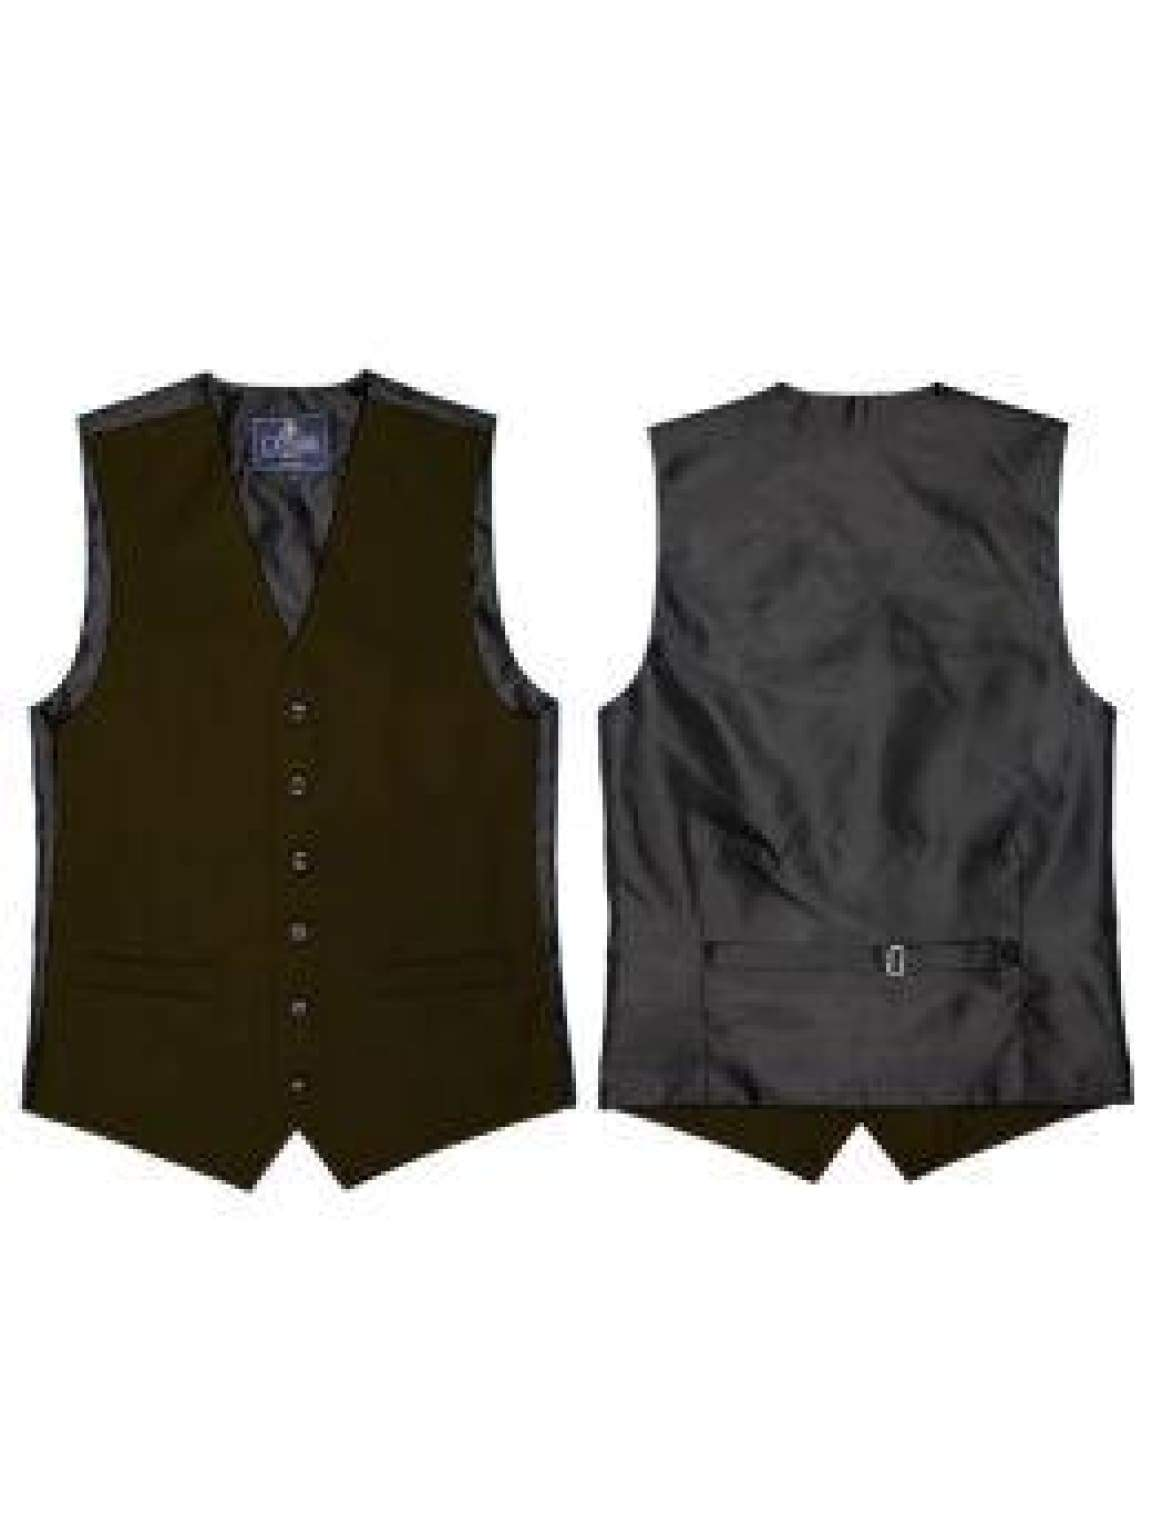 L A Smith Green Plain Country Waistcoat - S - Suit & Tailoring